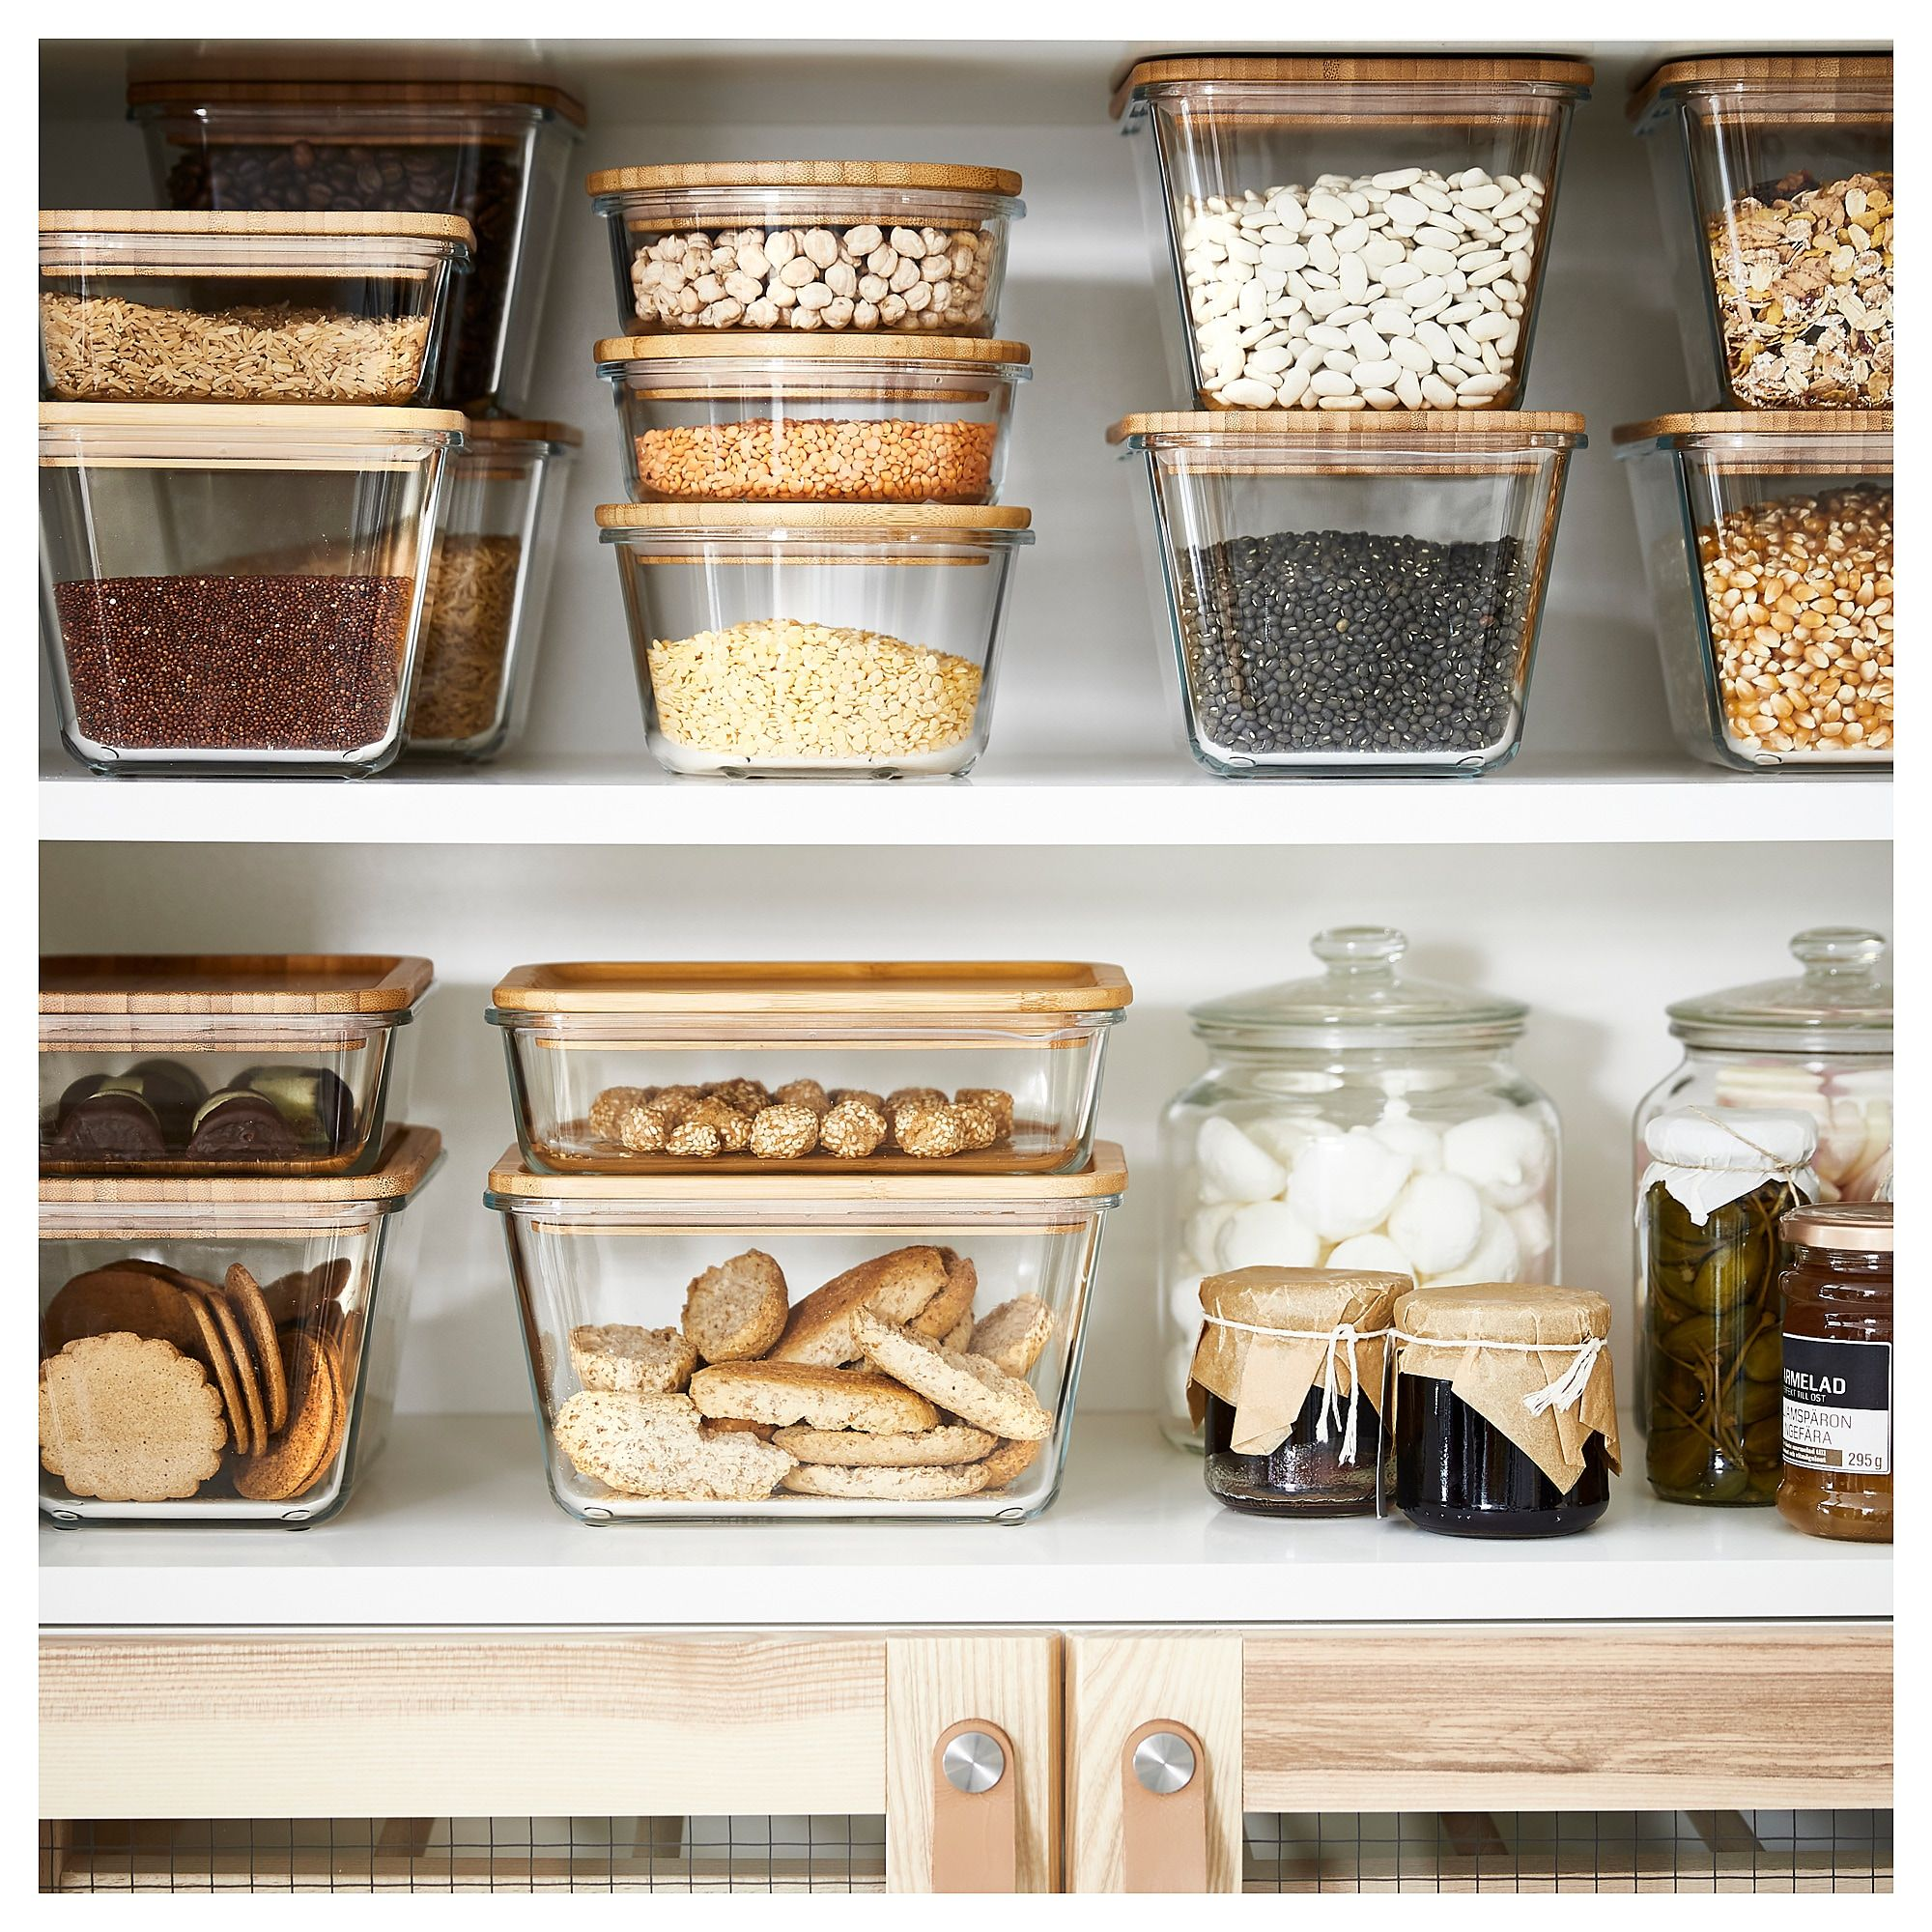 Ikea 365 Food Container Rectangular Glass Length 8 Width 6 Volume 61 Oz Get It Here Ikea In 2020 Ikea 365 Food Containers Food Storage Containers